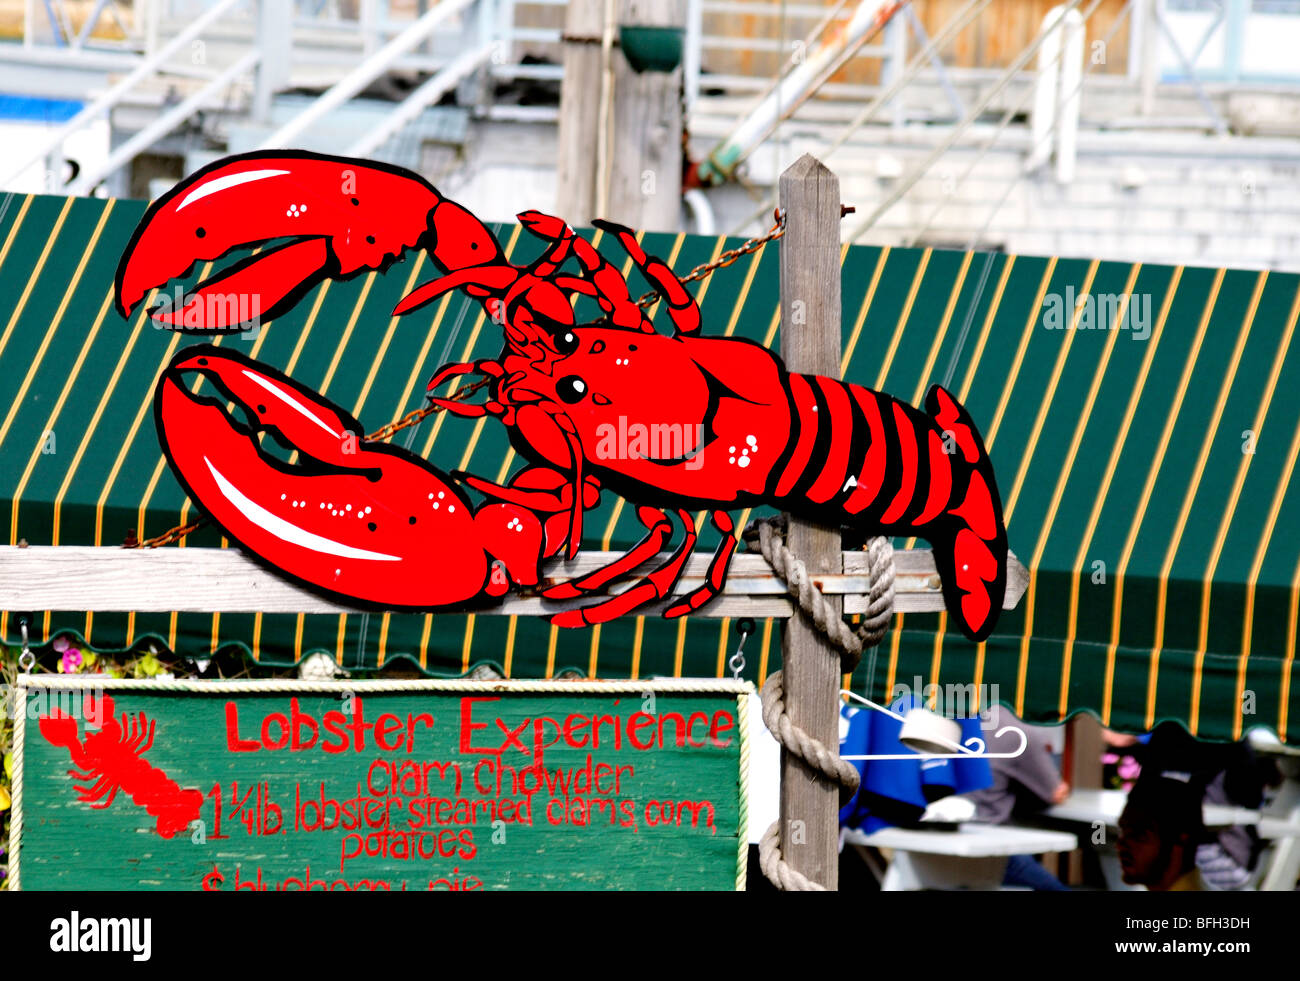 Bar Harbor Maine Lobster Stock Photos & Bar Harbor Maine Lobster Stock Images - Alamy